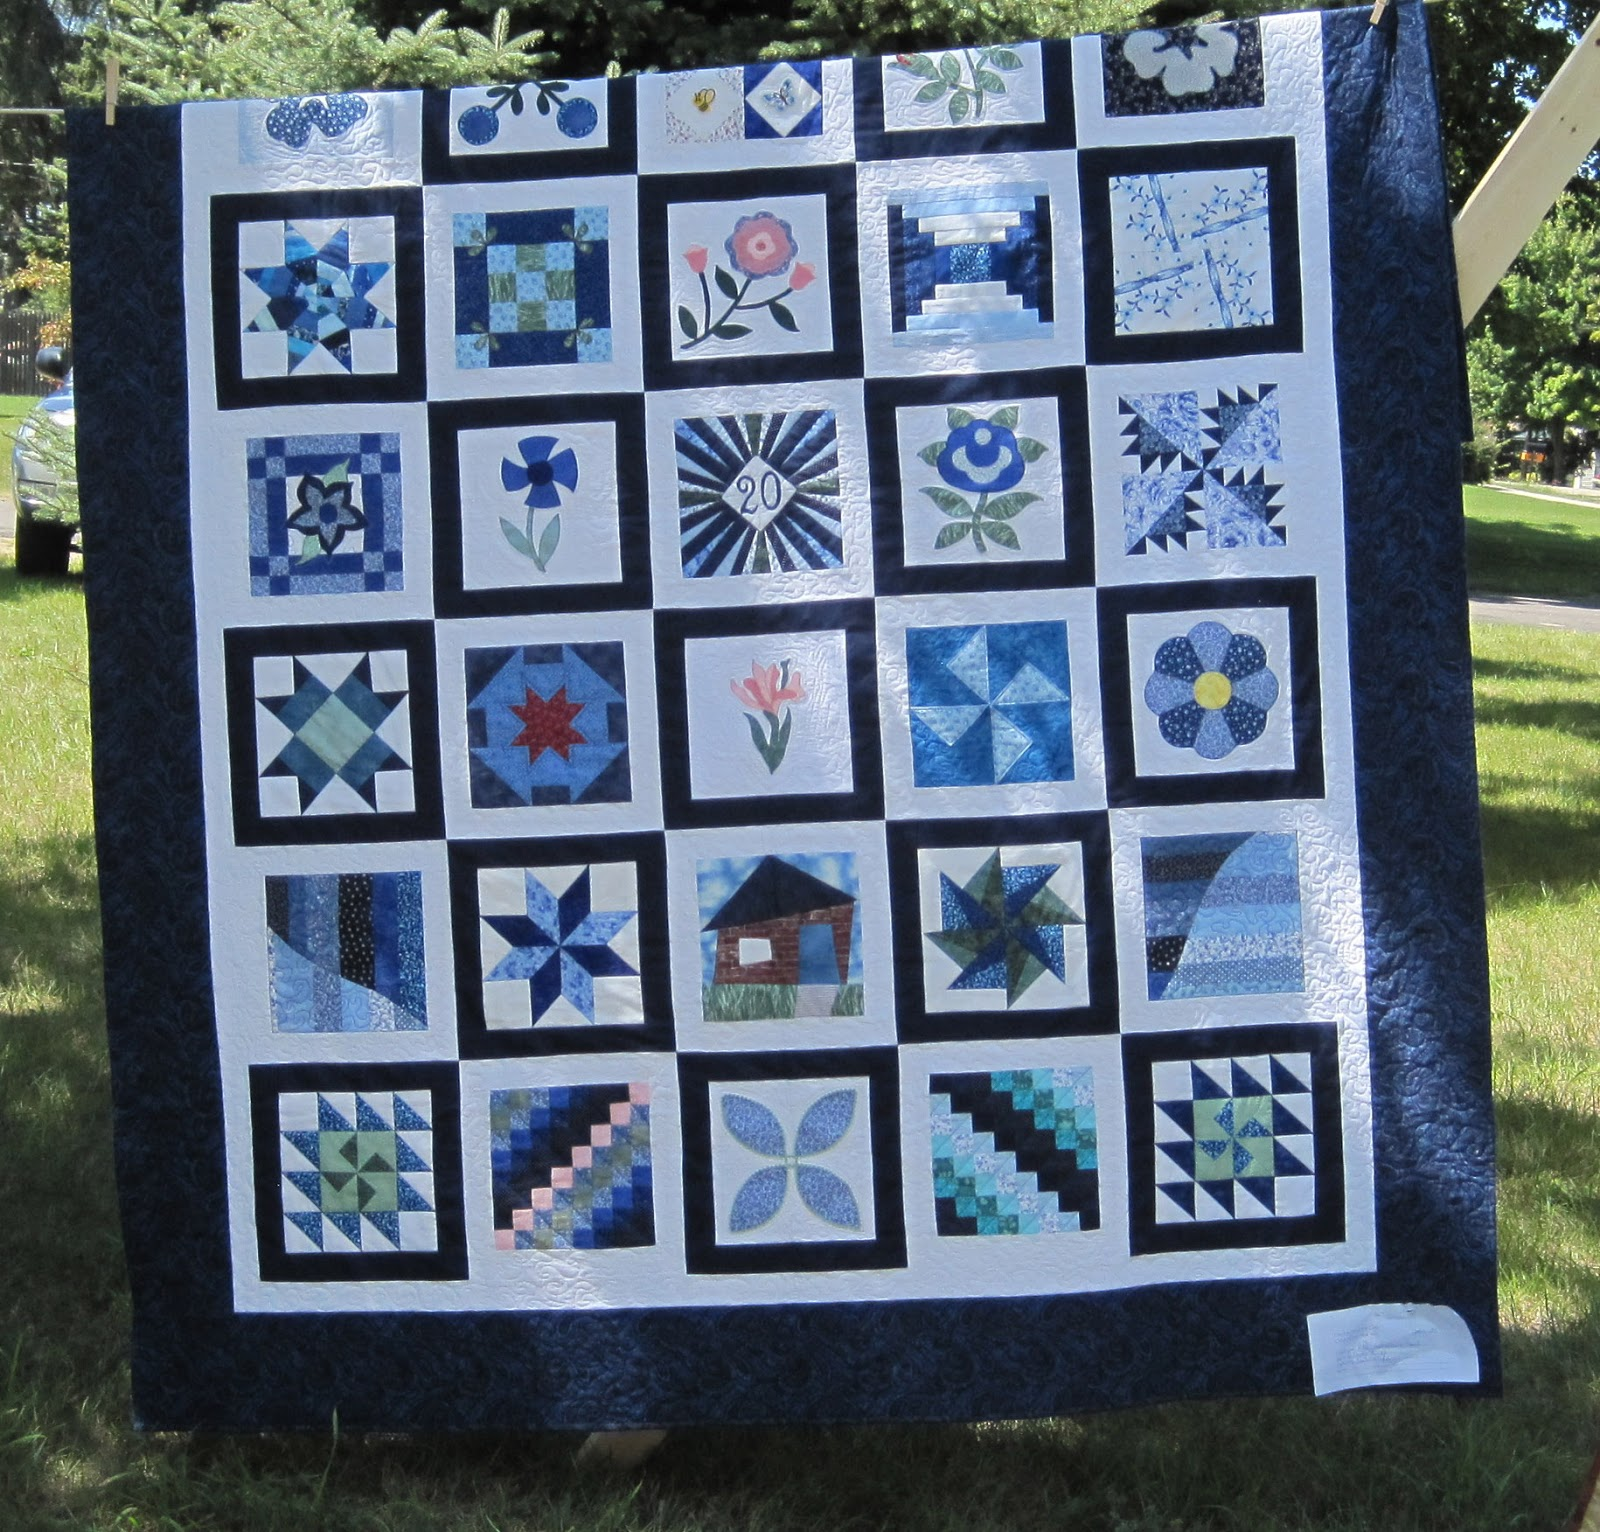 The Literate Quilter: Friendship Ring Quilt Guild Show : michigan quilts - Adamdwight.com